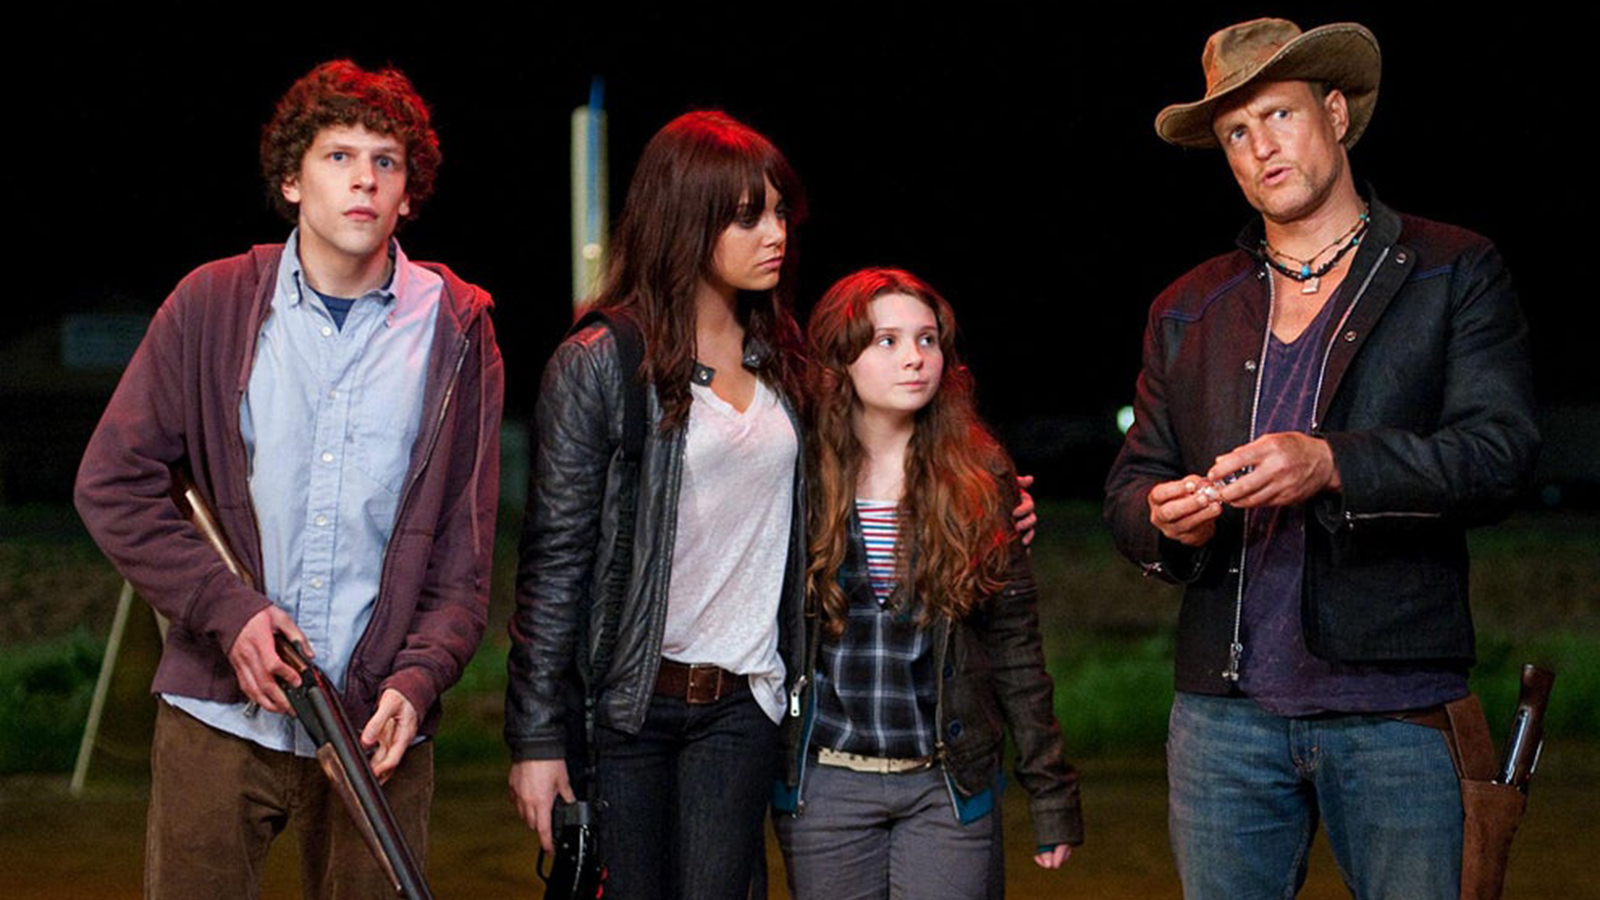 The cast of Zombieland